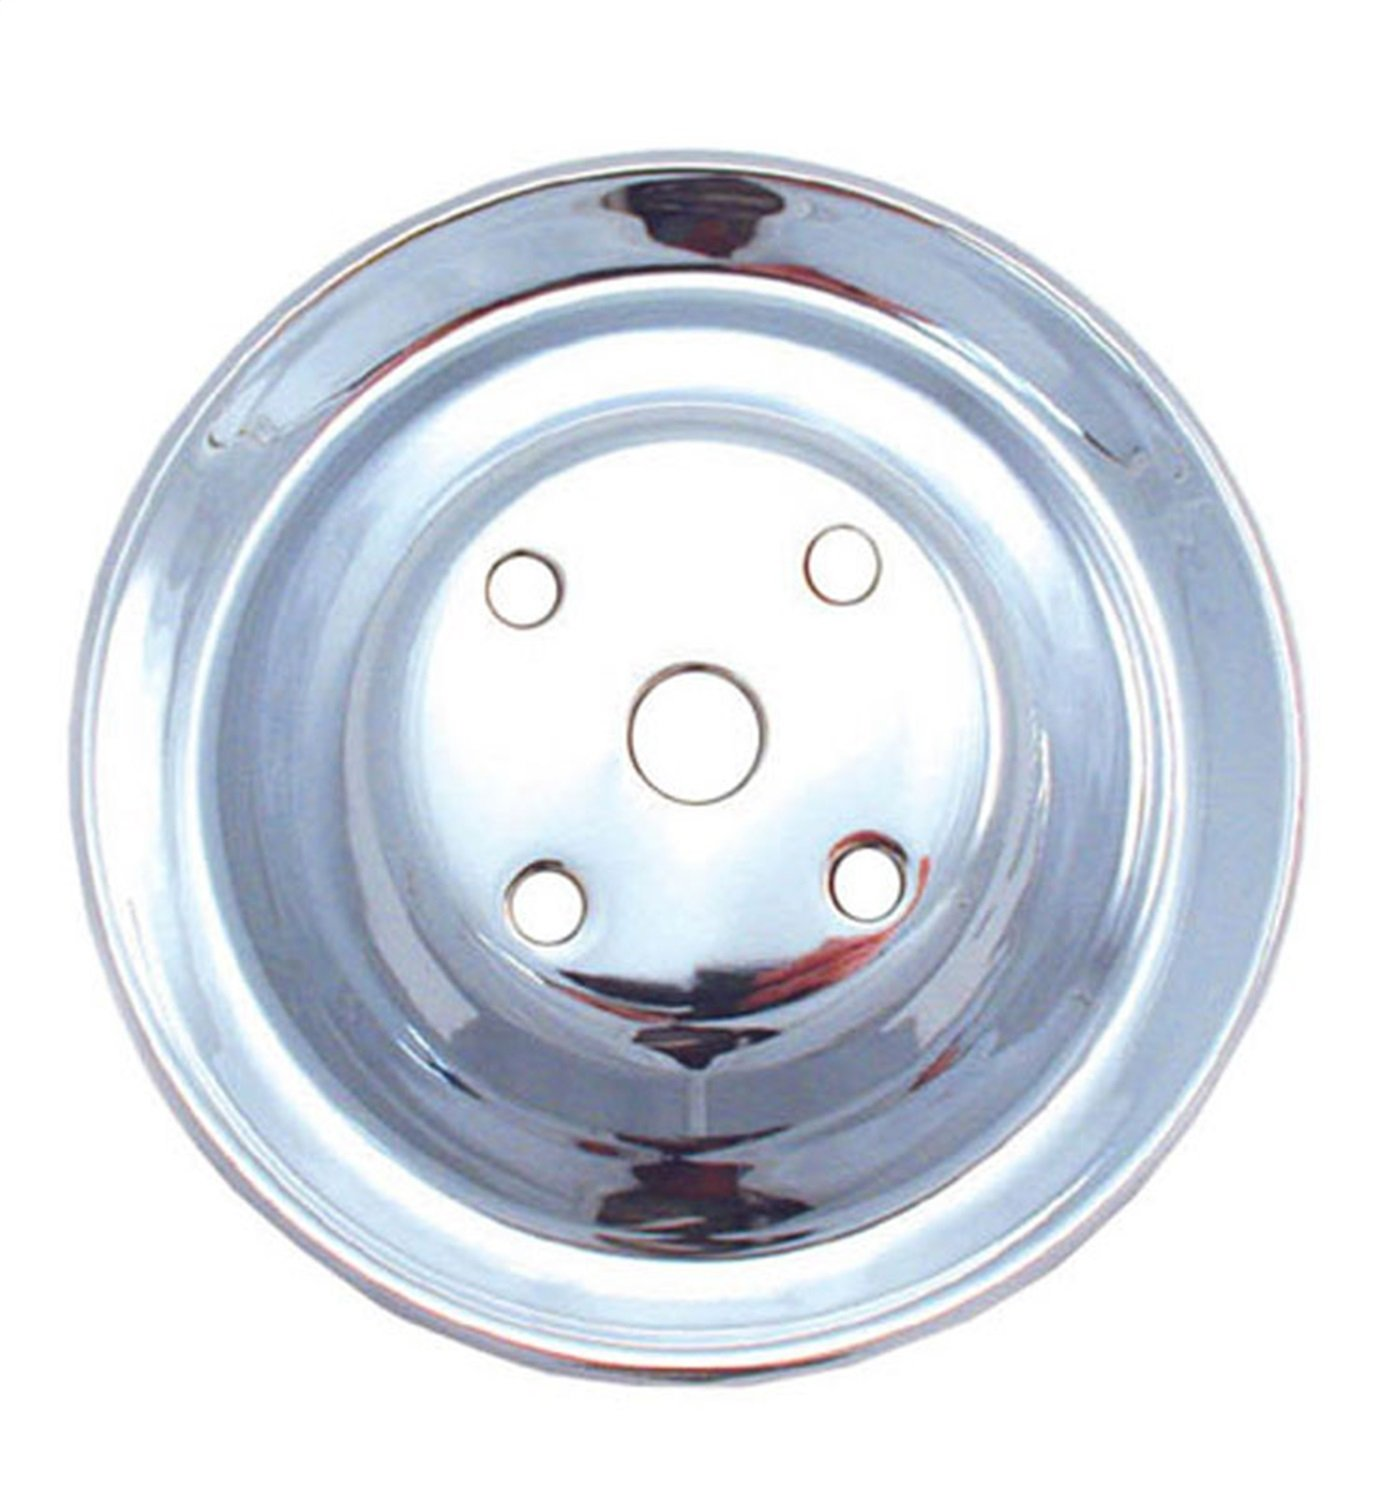 Spectre Performance 4418 Chrome Steel Pulley for Small Block Chevy SPE-4418